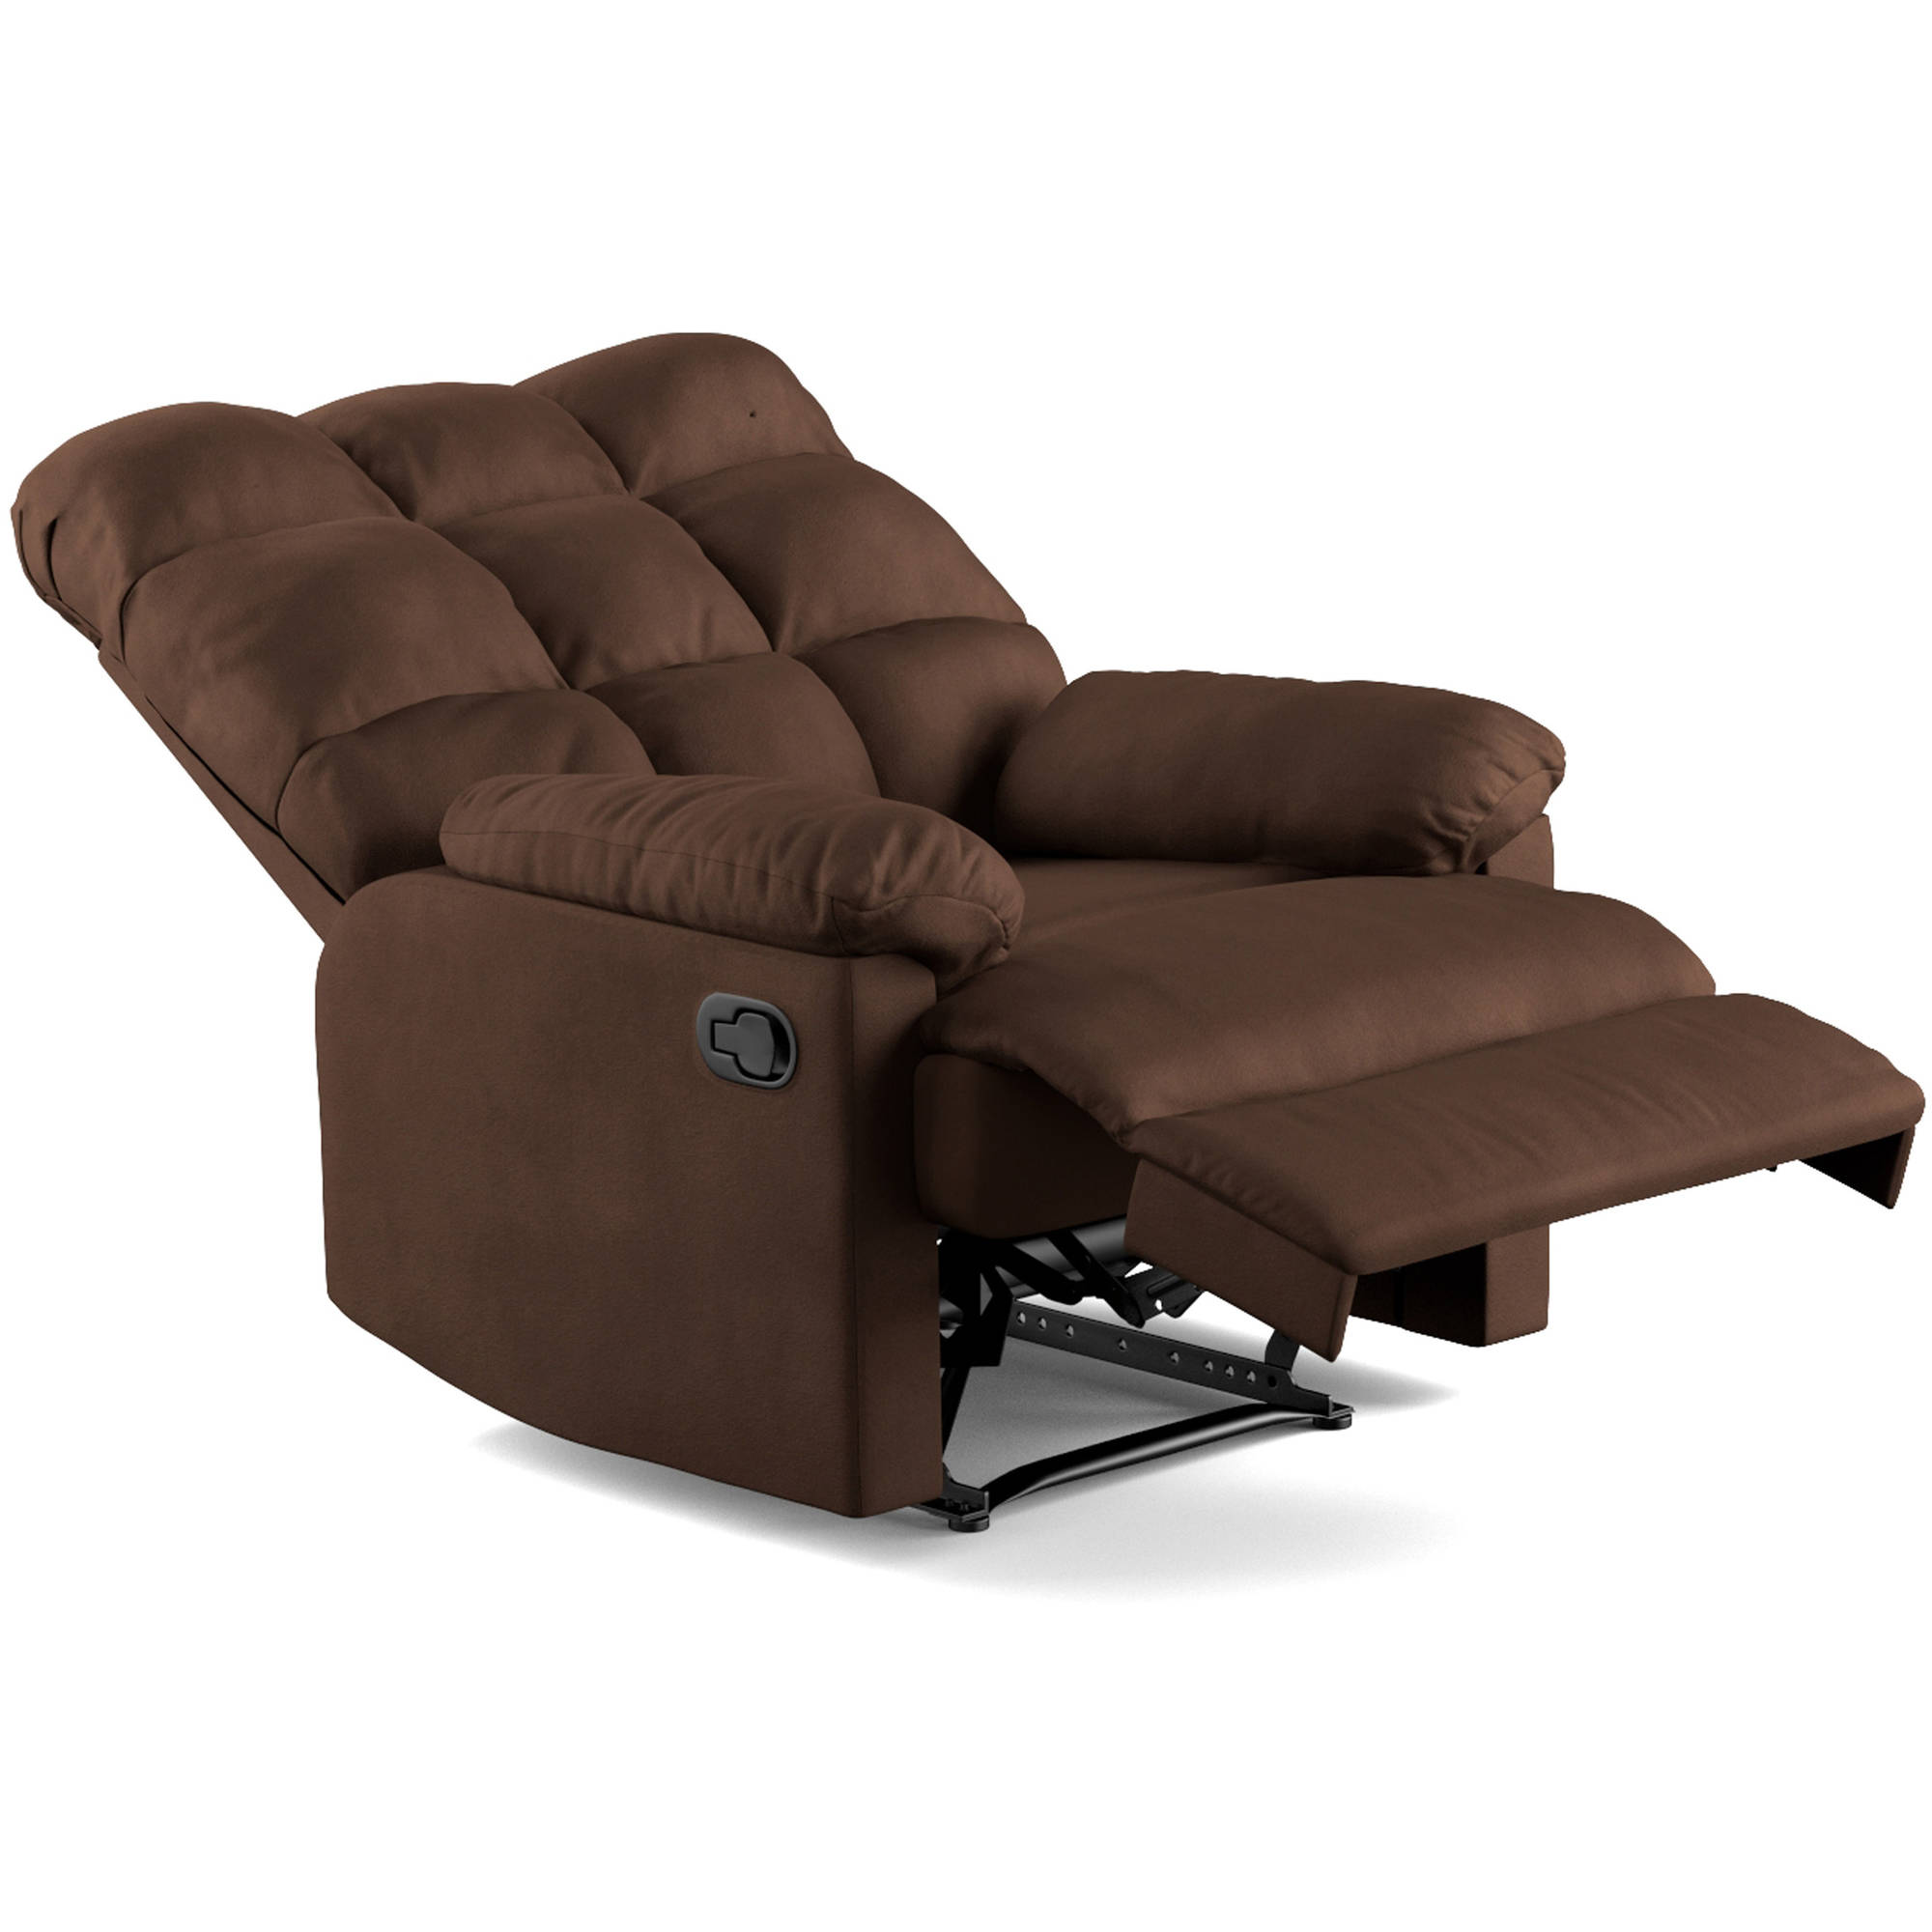 Mainstays Baja Wall Hugger Microfiber Biscuit back Recliner Chair Multiple Colors - Walmart.com  sc 1 st  Walmart : best deals on recliner chairs - islam-shia.org